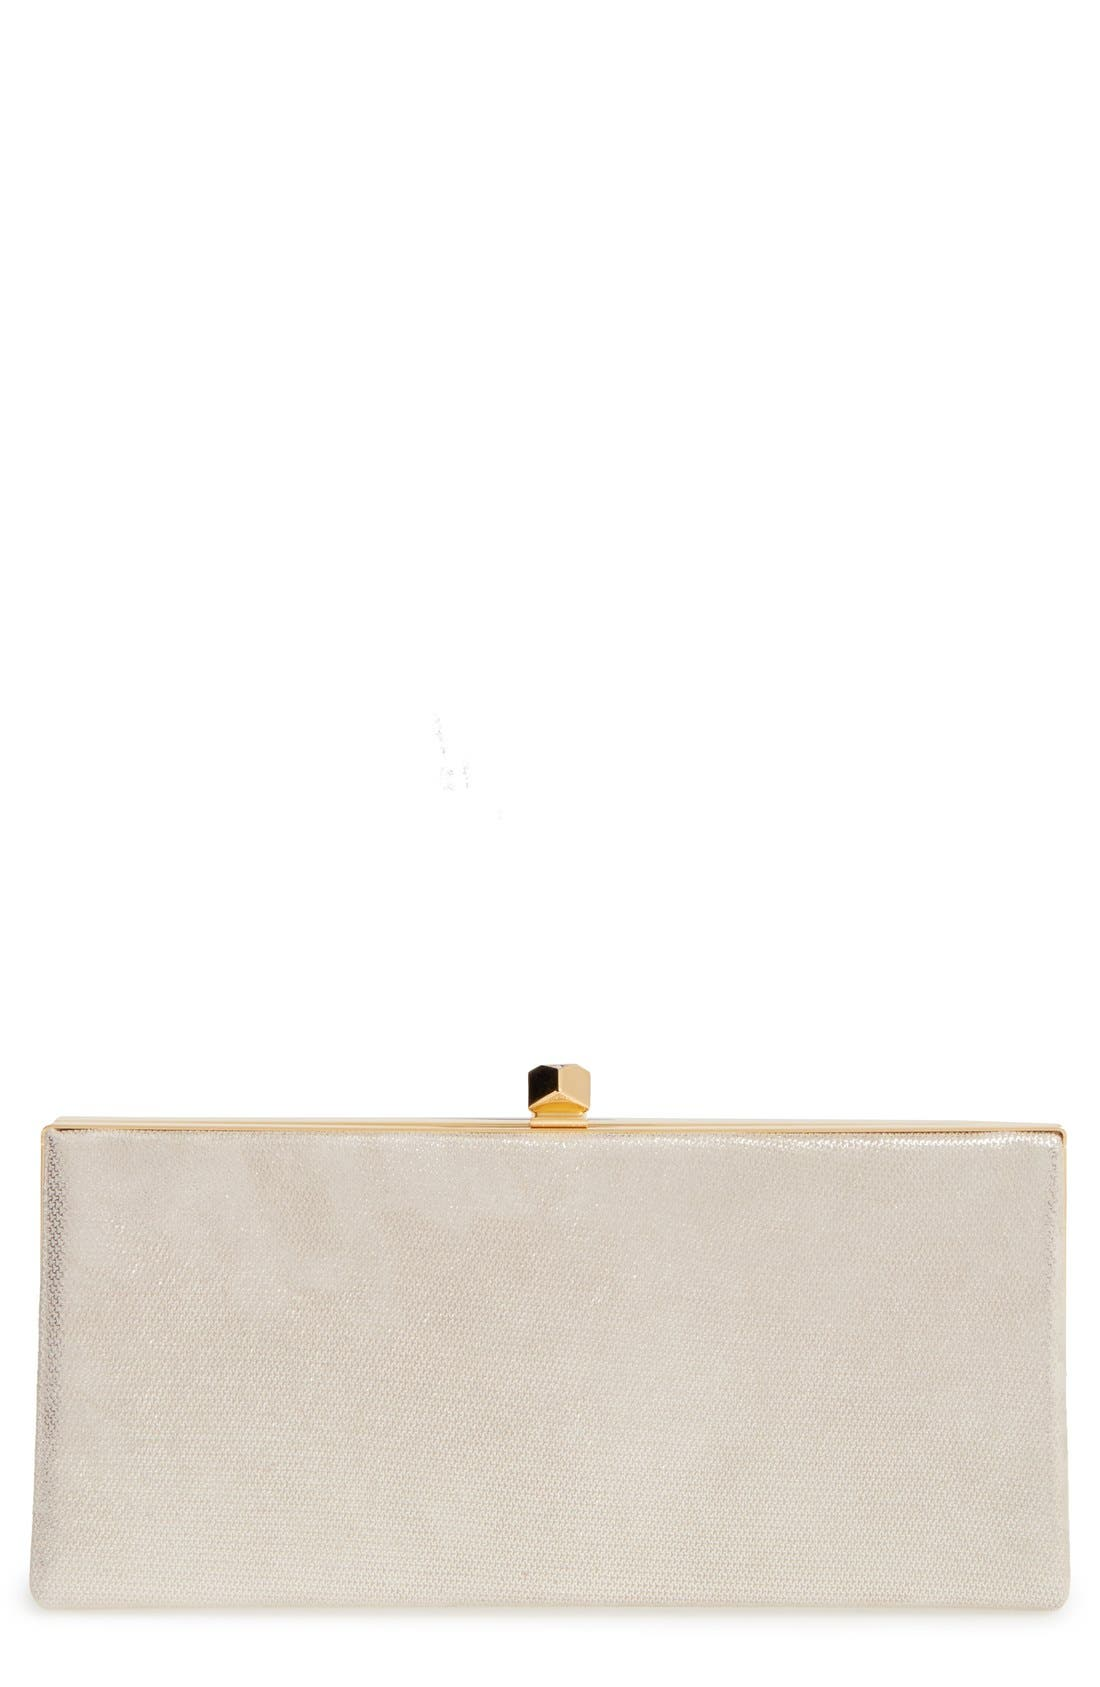 Jimmy Choo 'Mini Celeste' Metallic Clutch